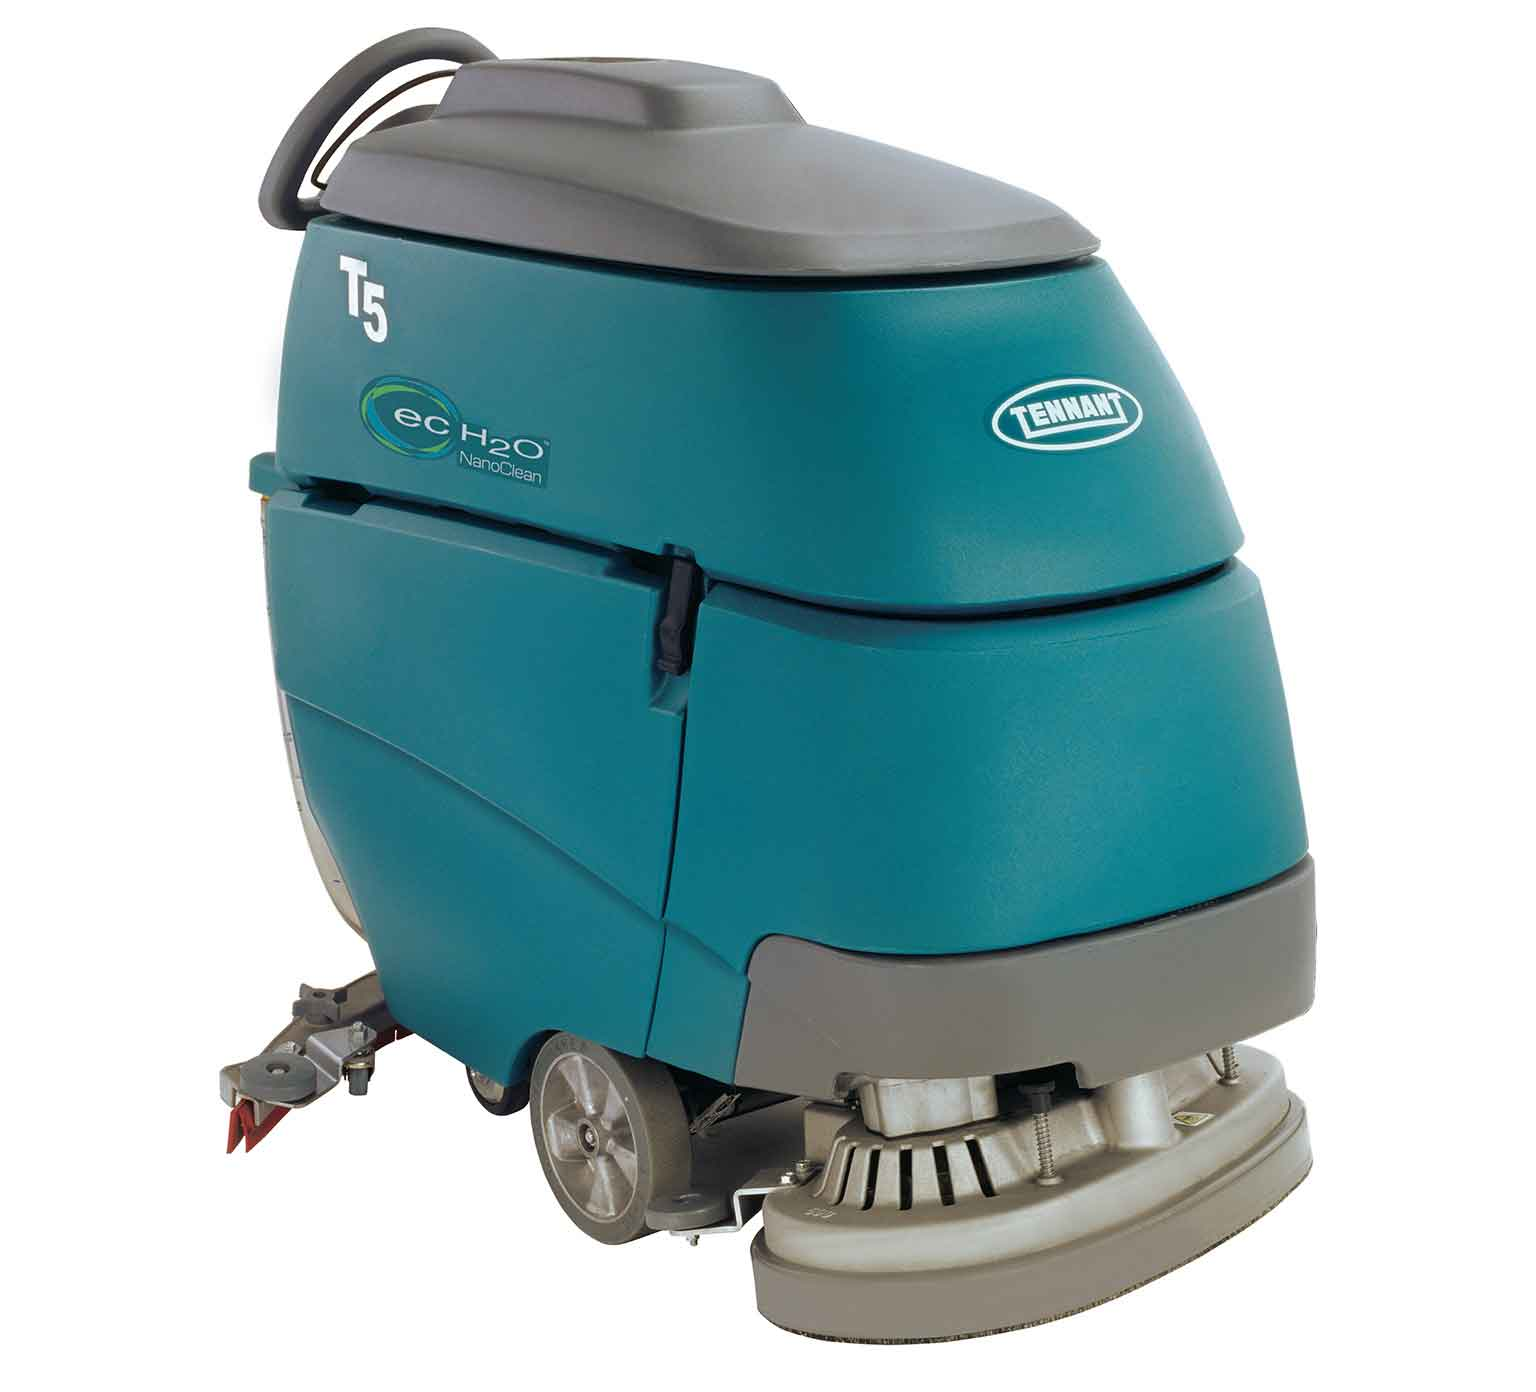 t5 mid size walk behind scrubber tennant company rh tennantco com Tennant T5 Floor Scrubber tennant t5 eco h2o service manual